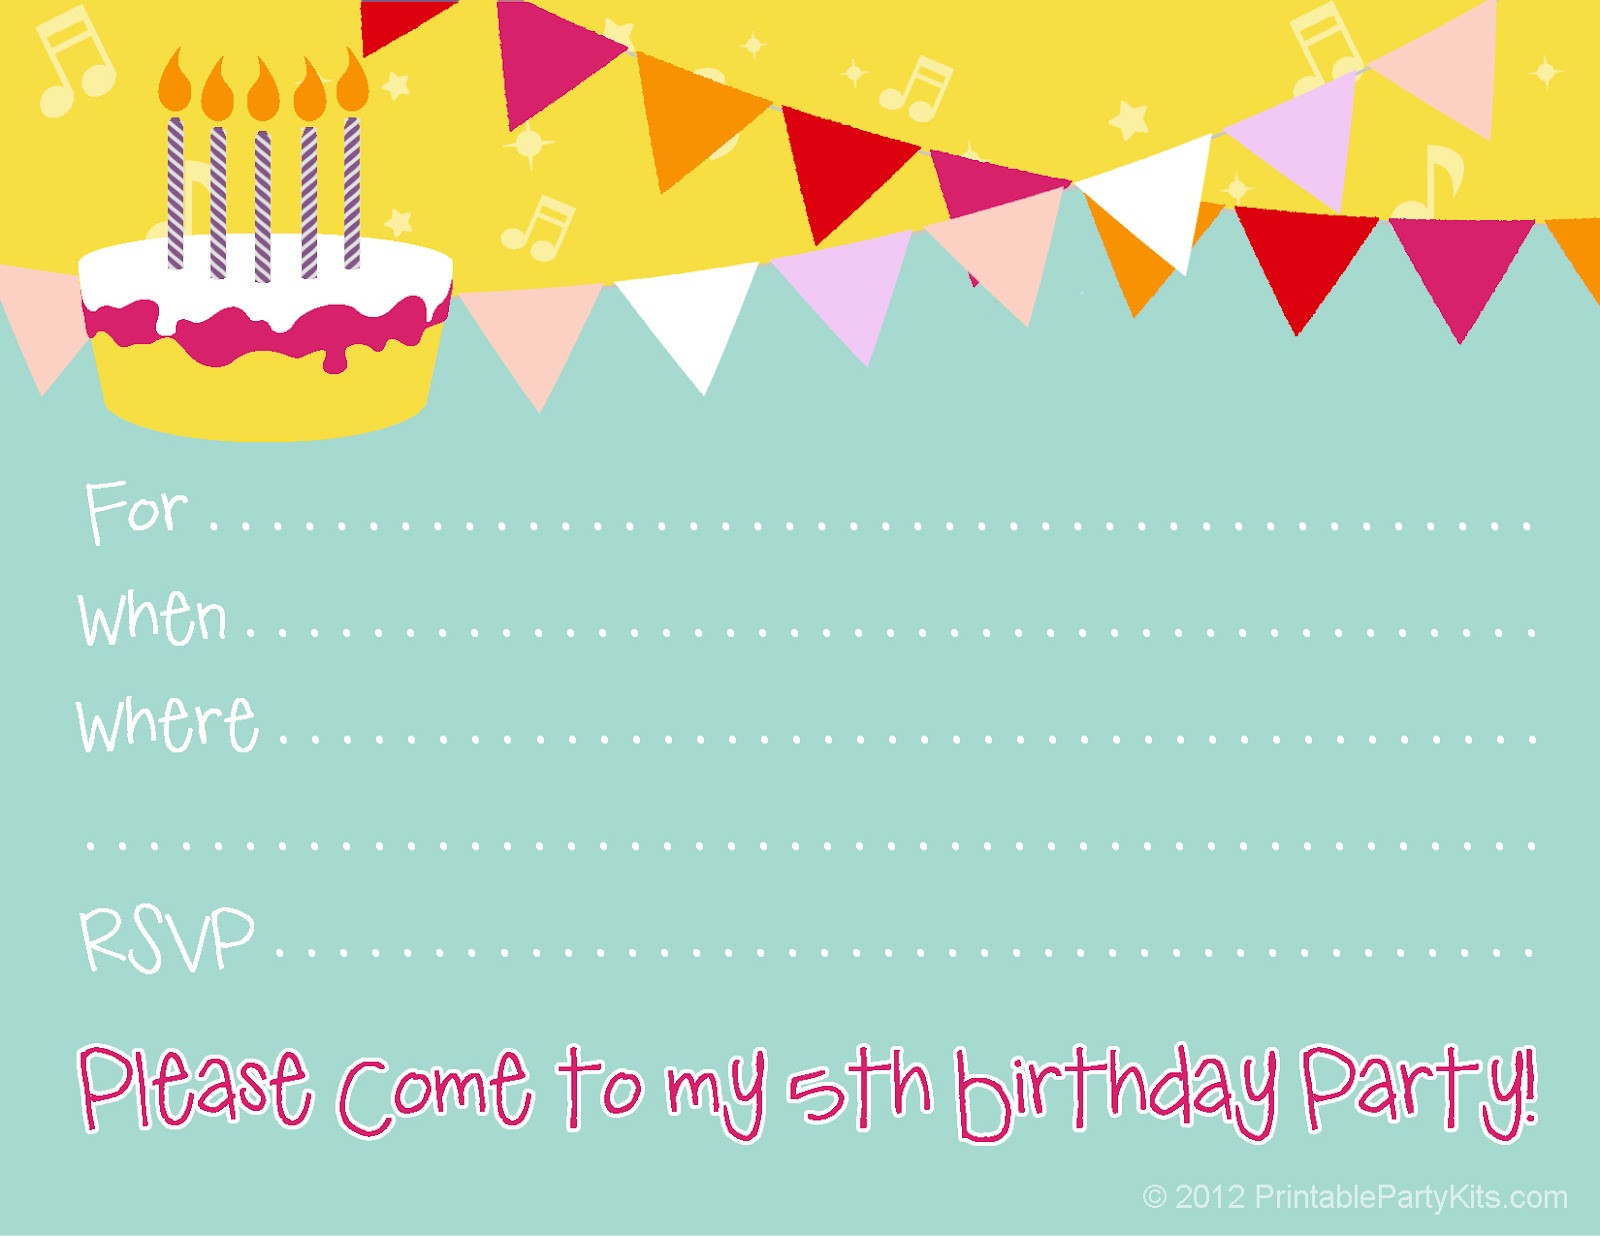 Best ideas about Birthday Party Templates . Save or Pin Free Birthday Party Invitations for Girl – FREE Printable Now.